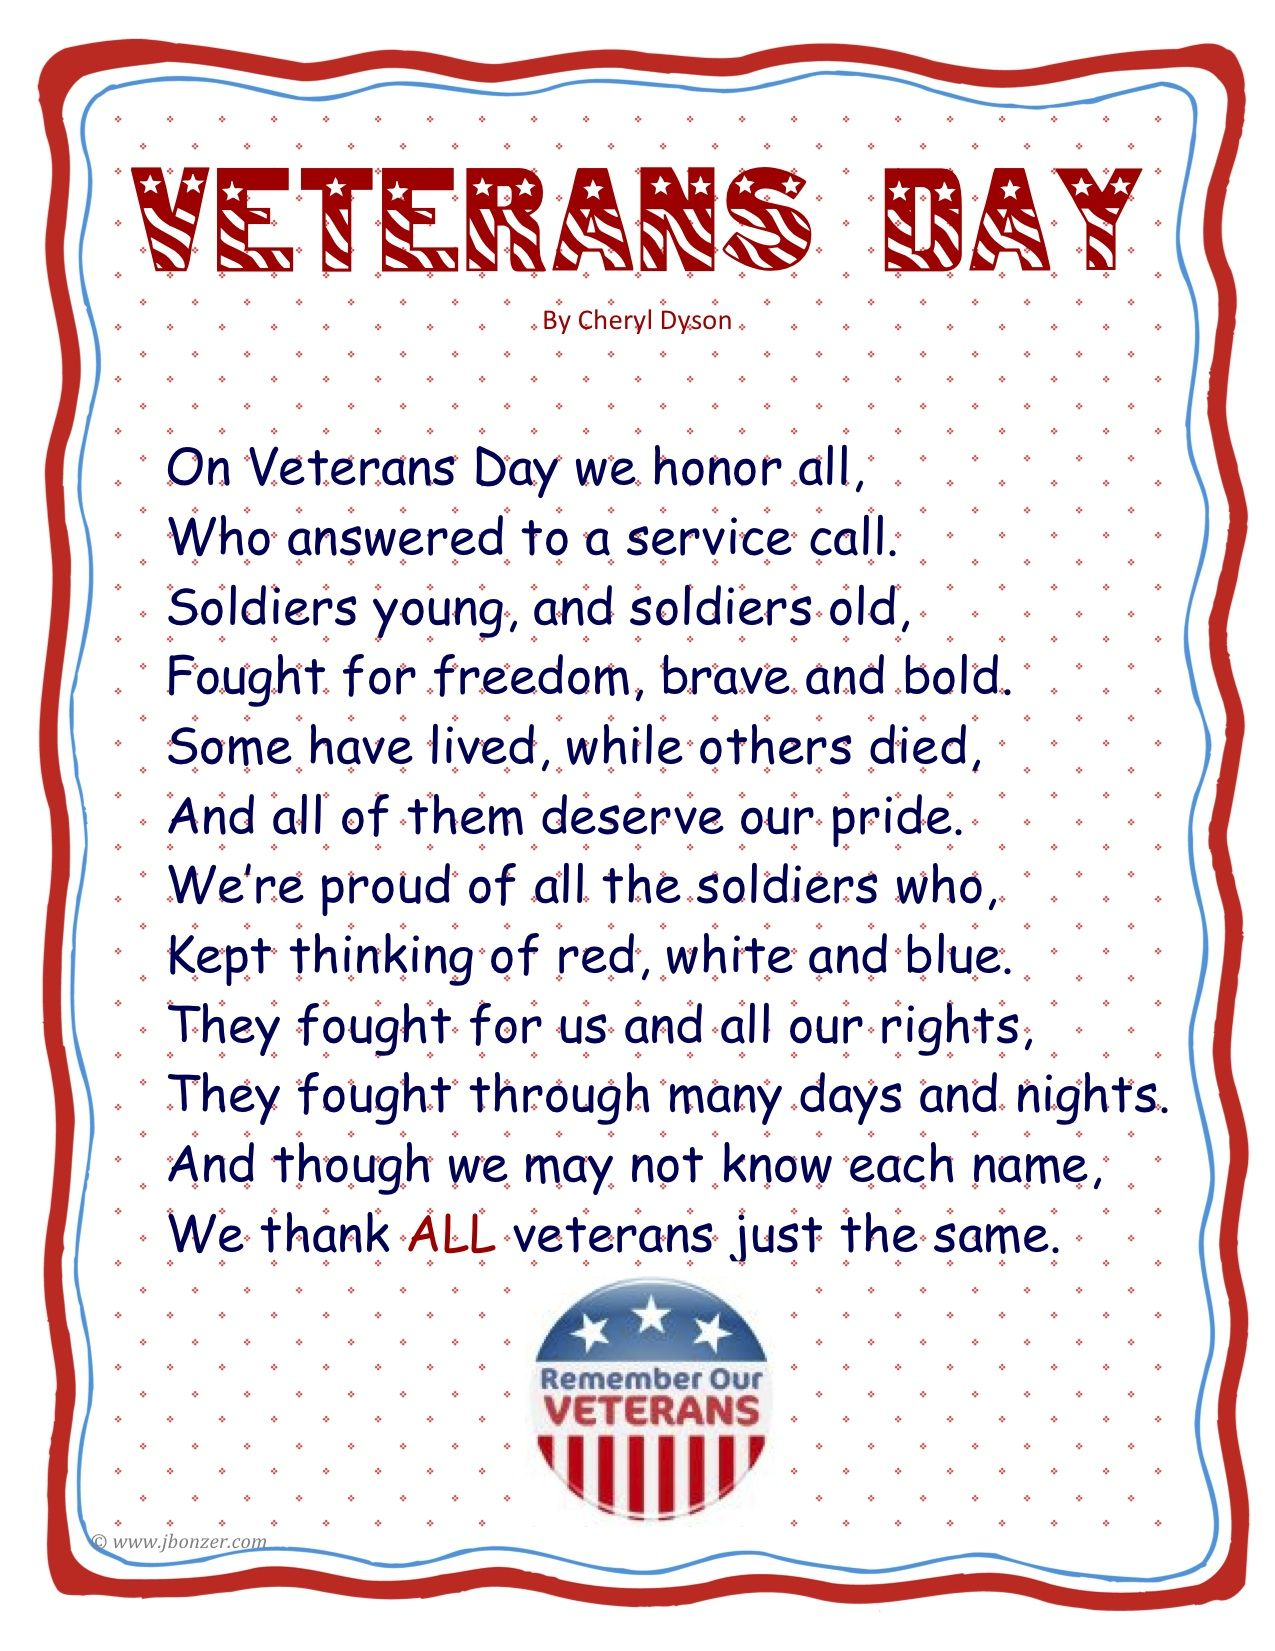 Veteran's Day Poem